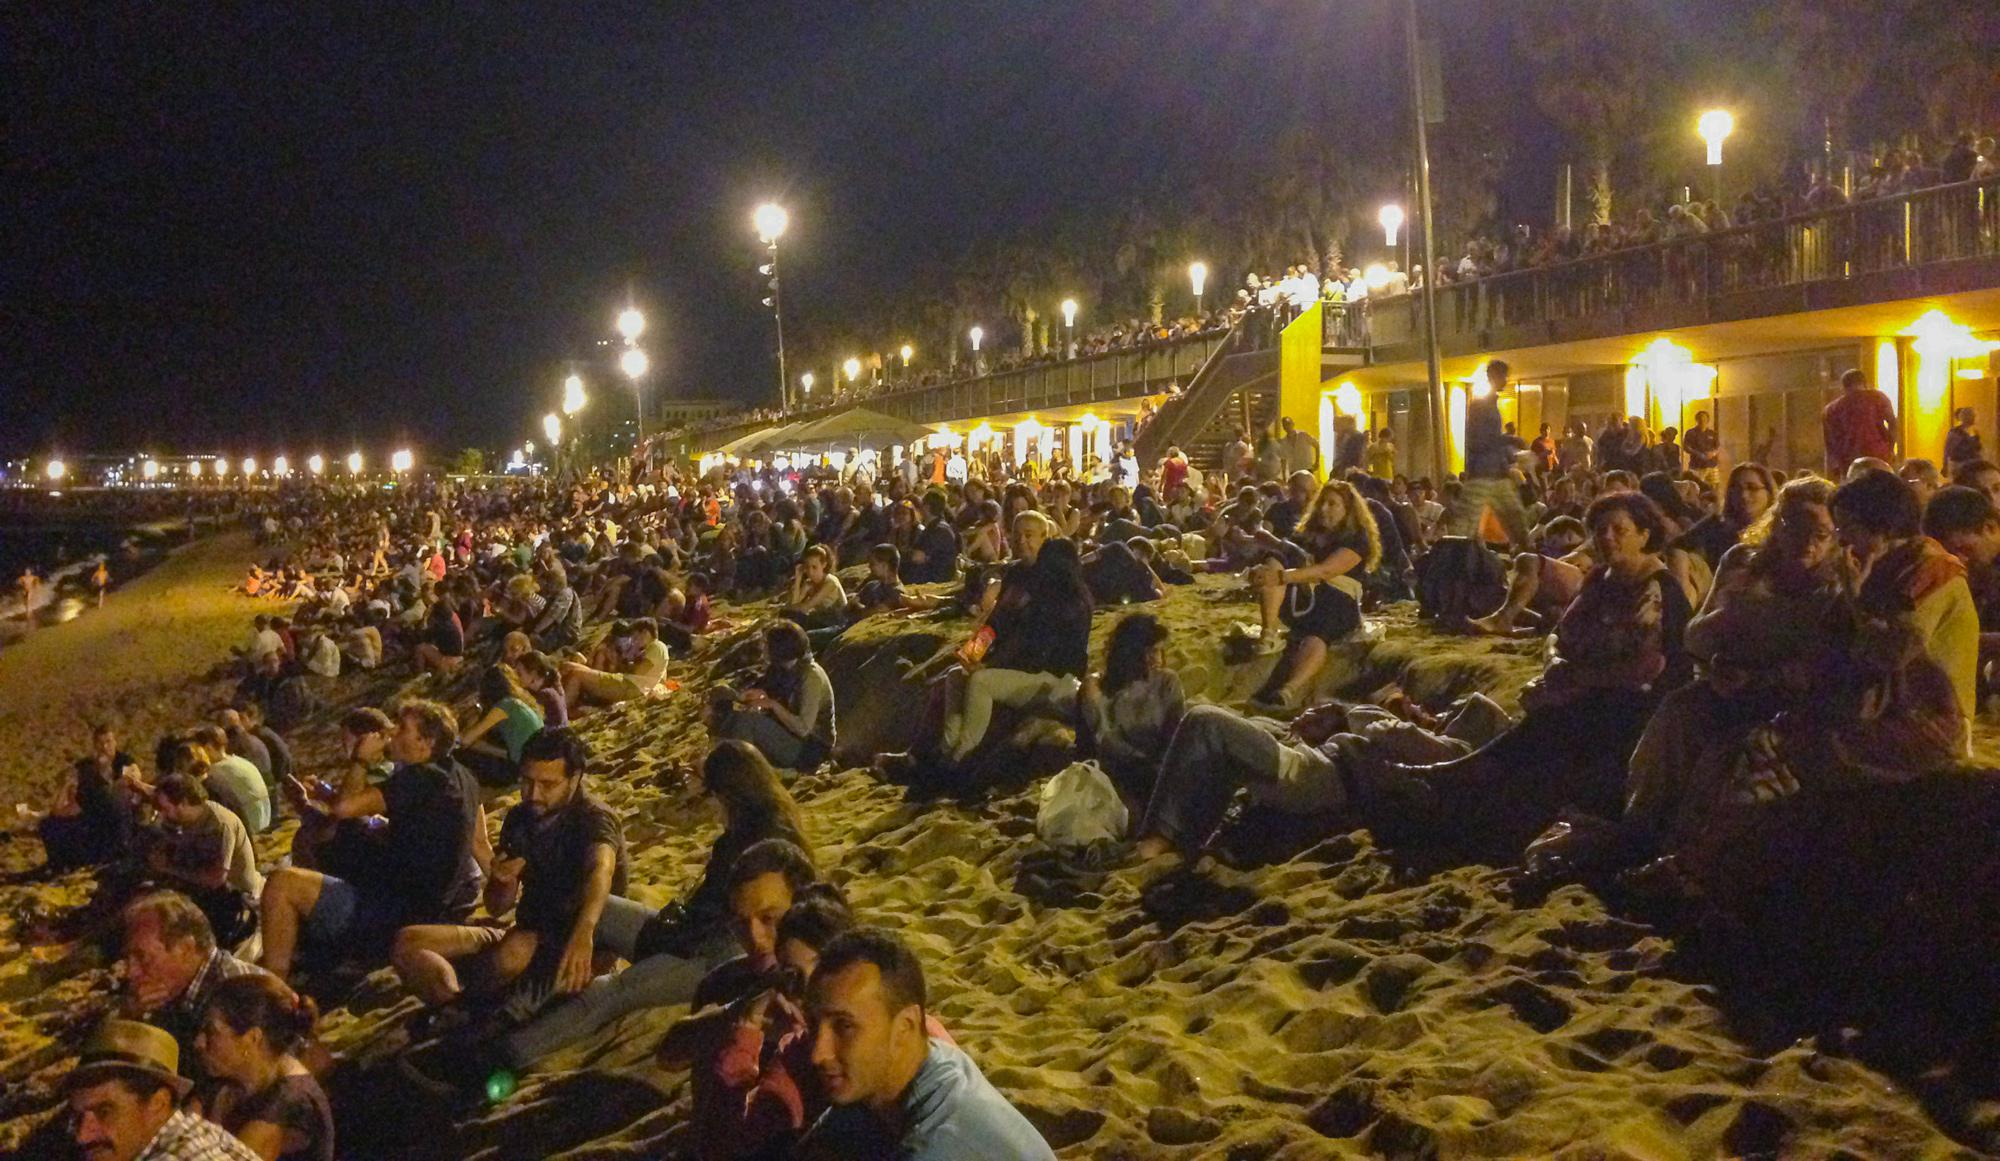 People are waiting for the fireworks on the beach of Barceloneta